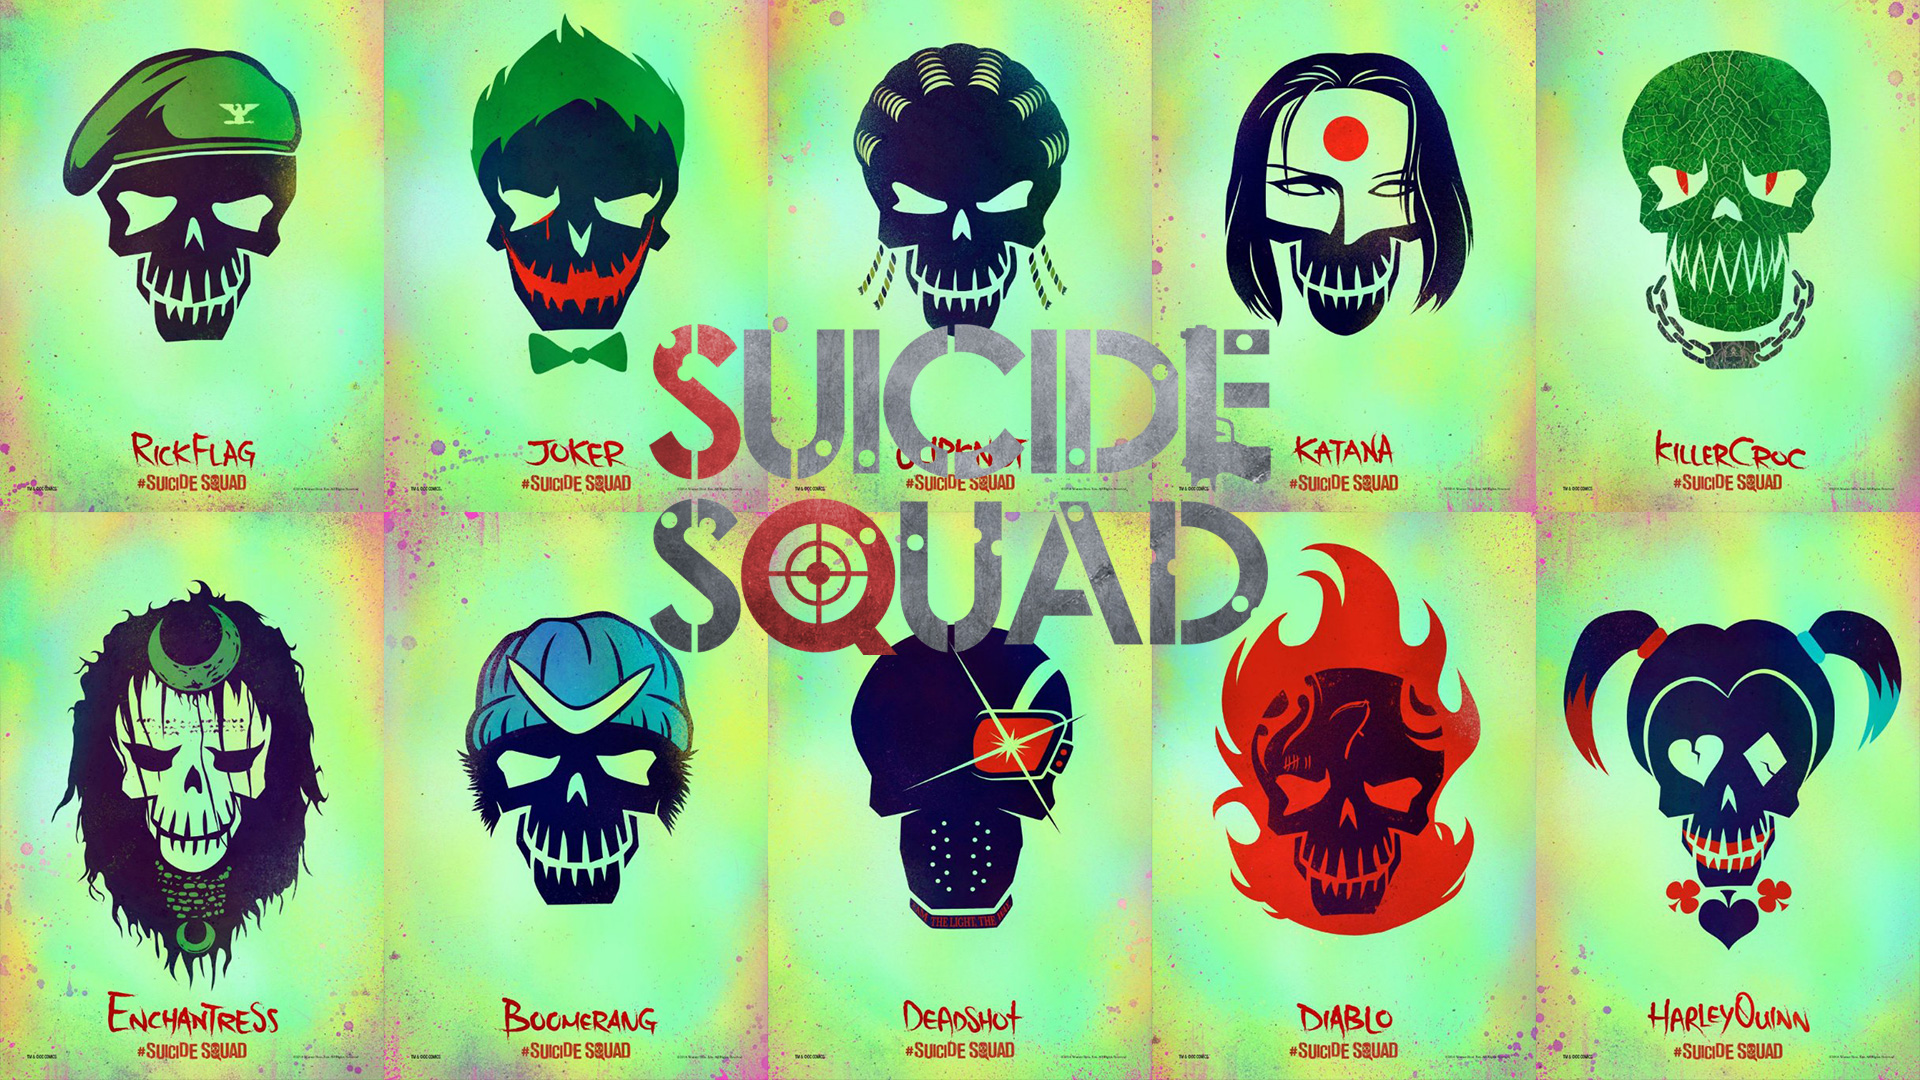 Suicide Squad movie wallpaper hd HD Wallpapers Images Stock 1920x1080